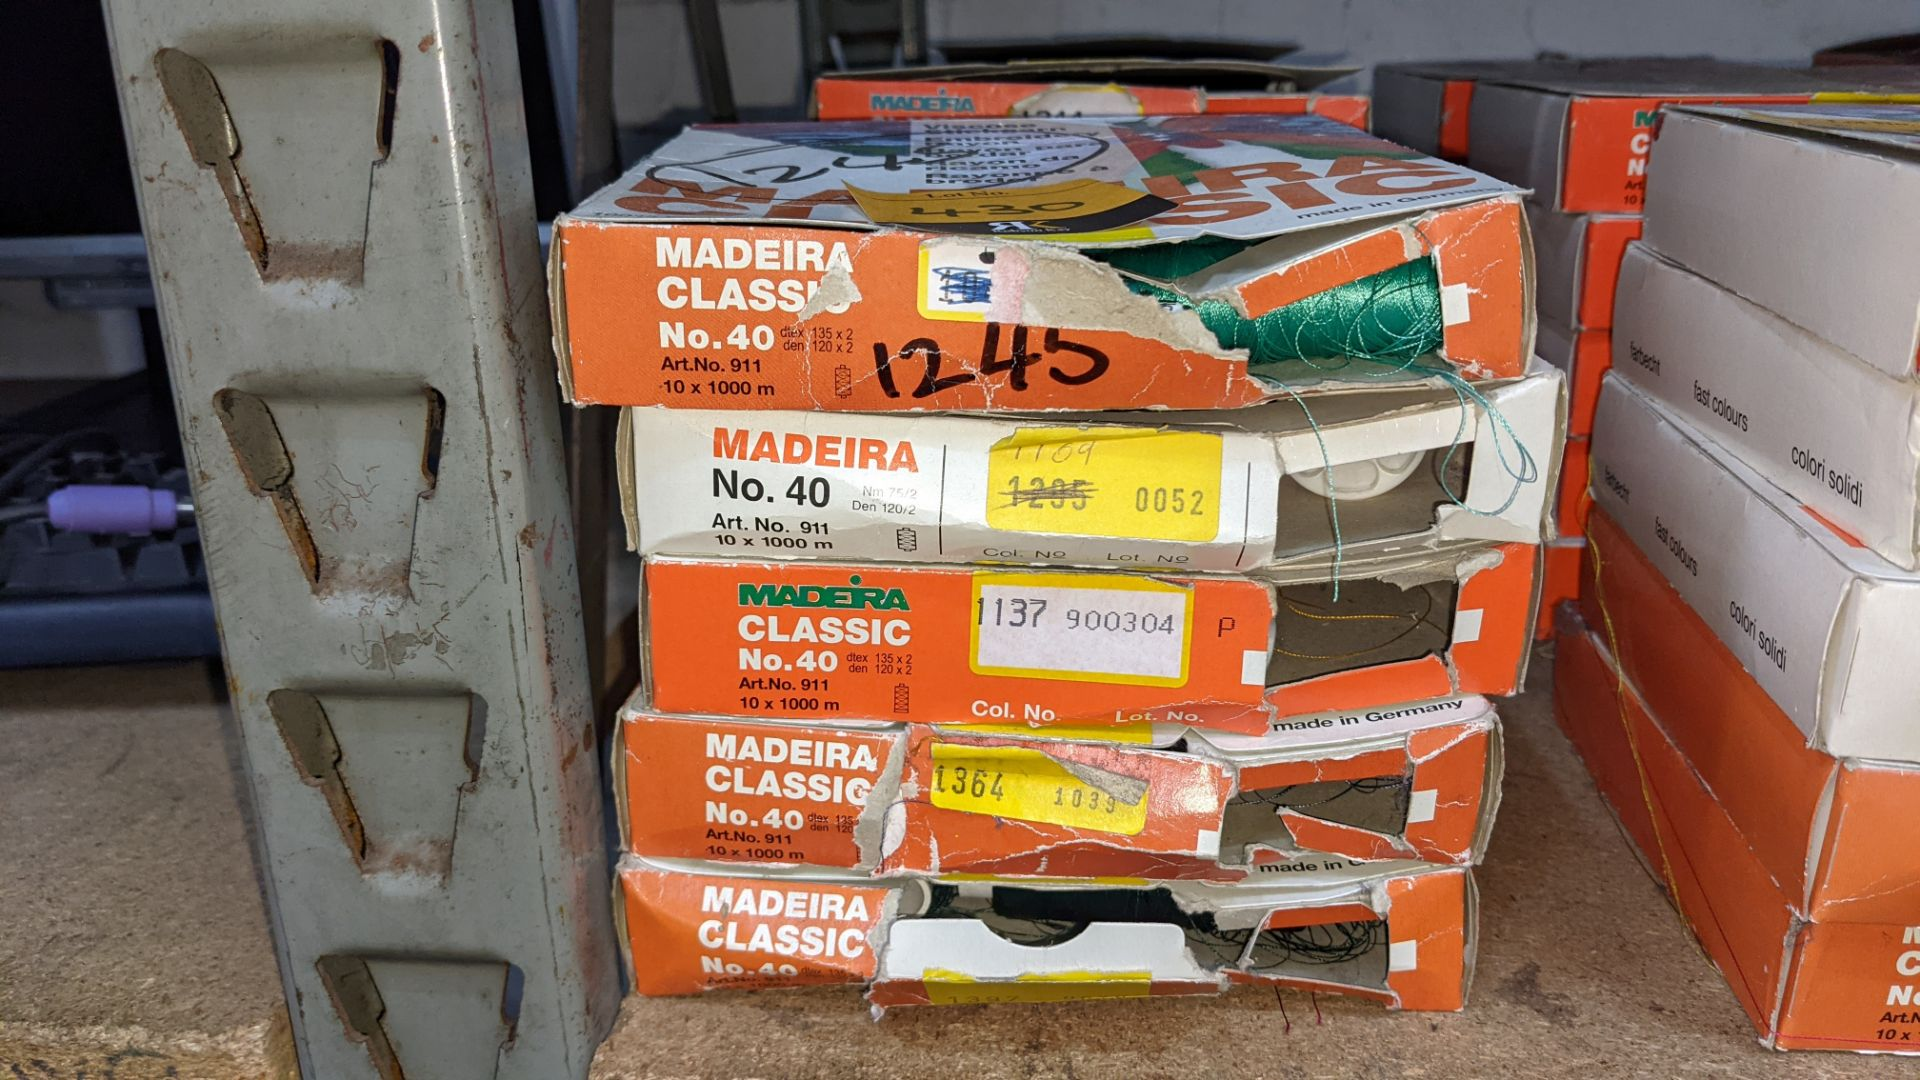 15 assorted boxes of Madeira Classic No. 40 embroidery rayon thread - Image 3 of 8